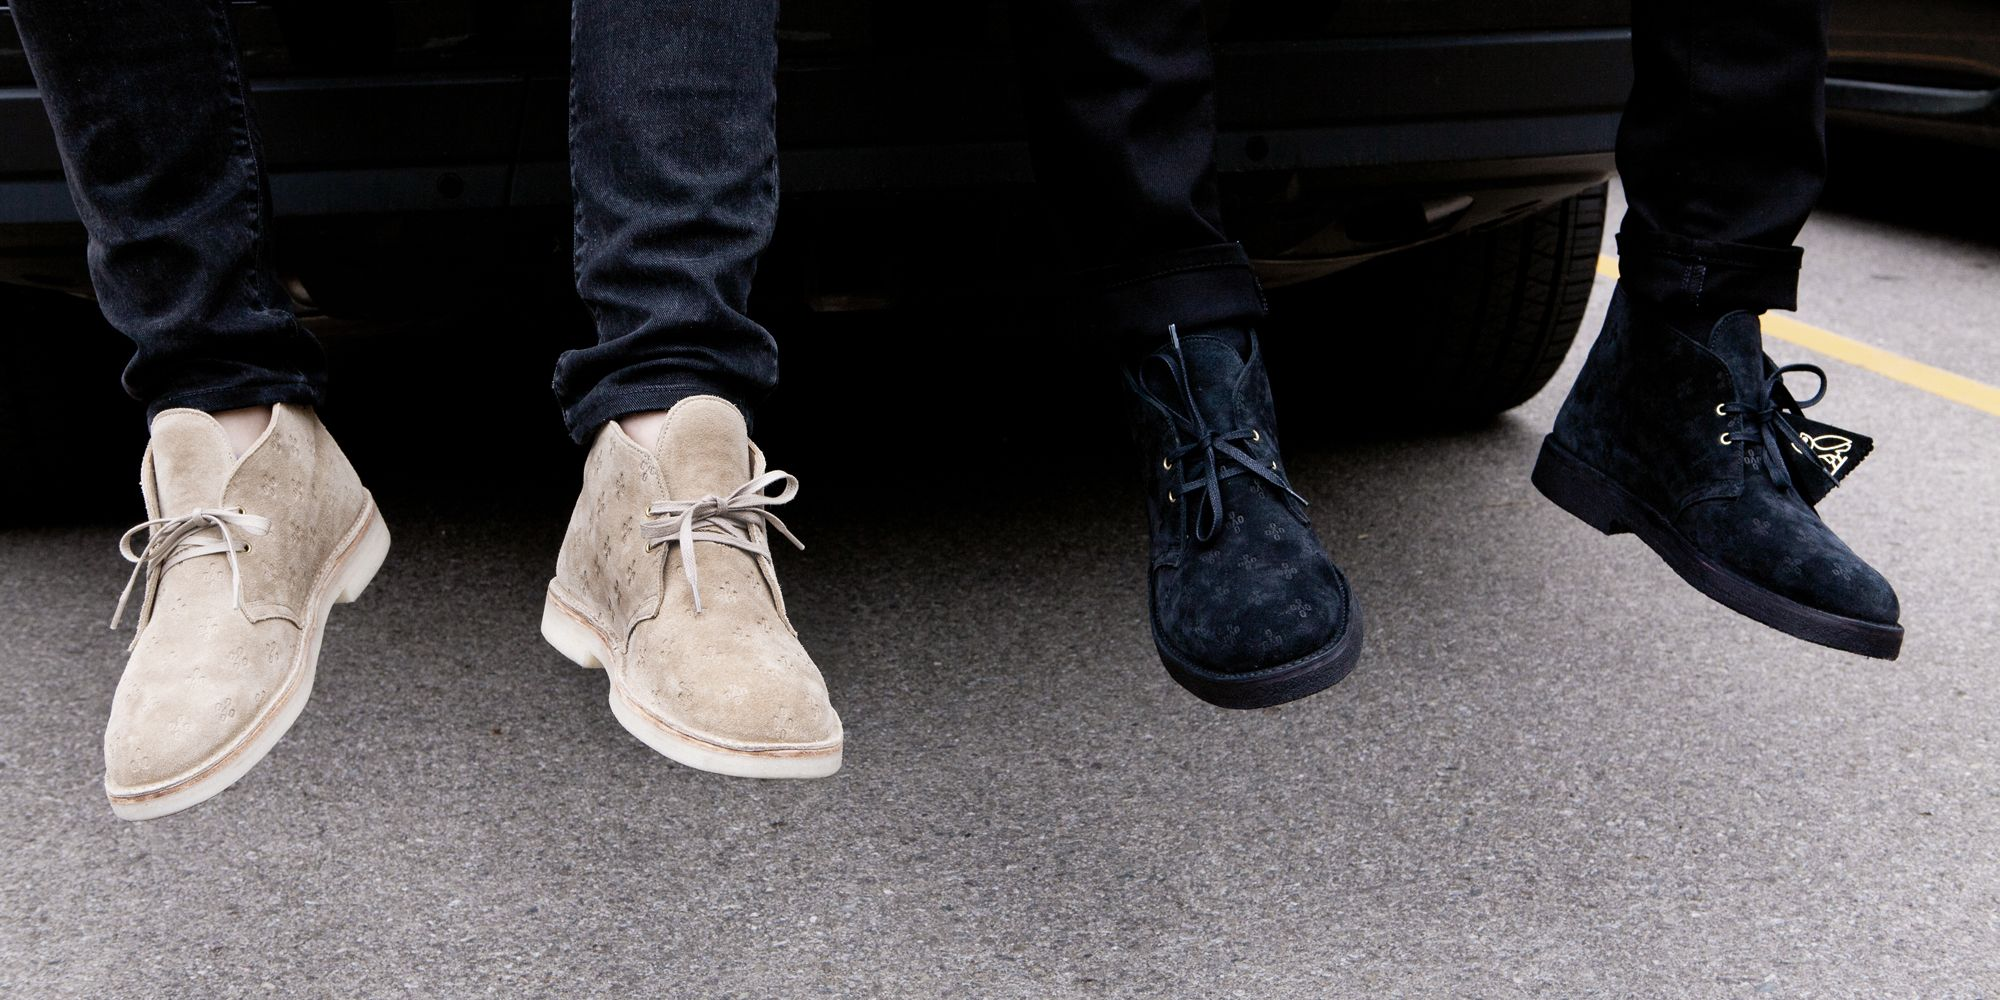 Drake's OVO x Clarks Desert Boots Have Finally Arrived